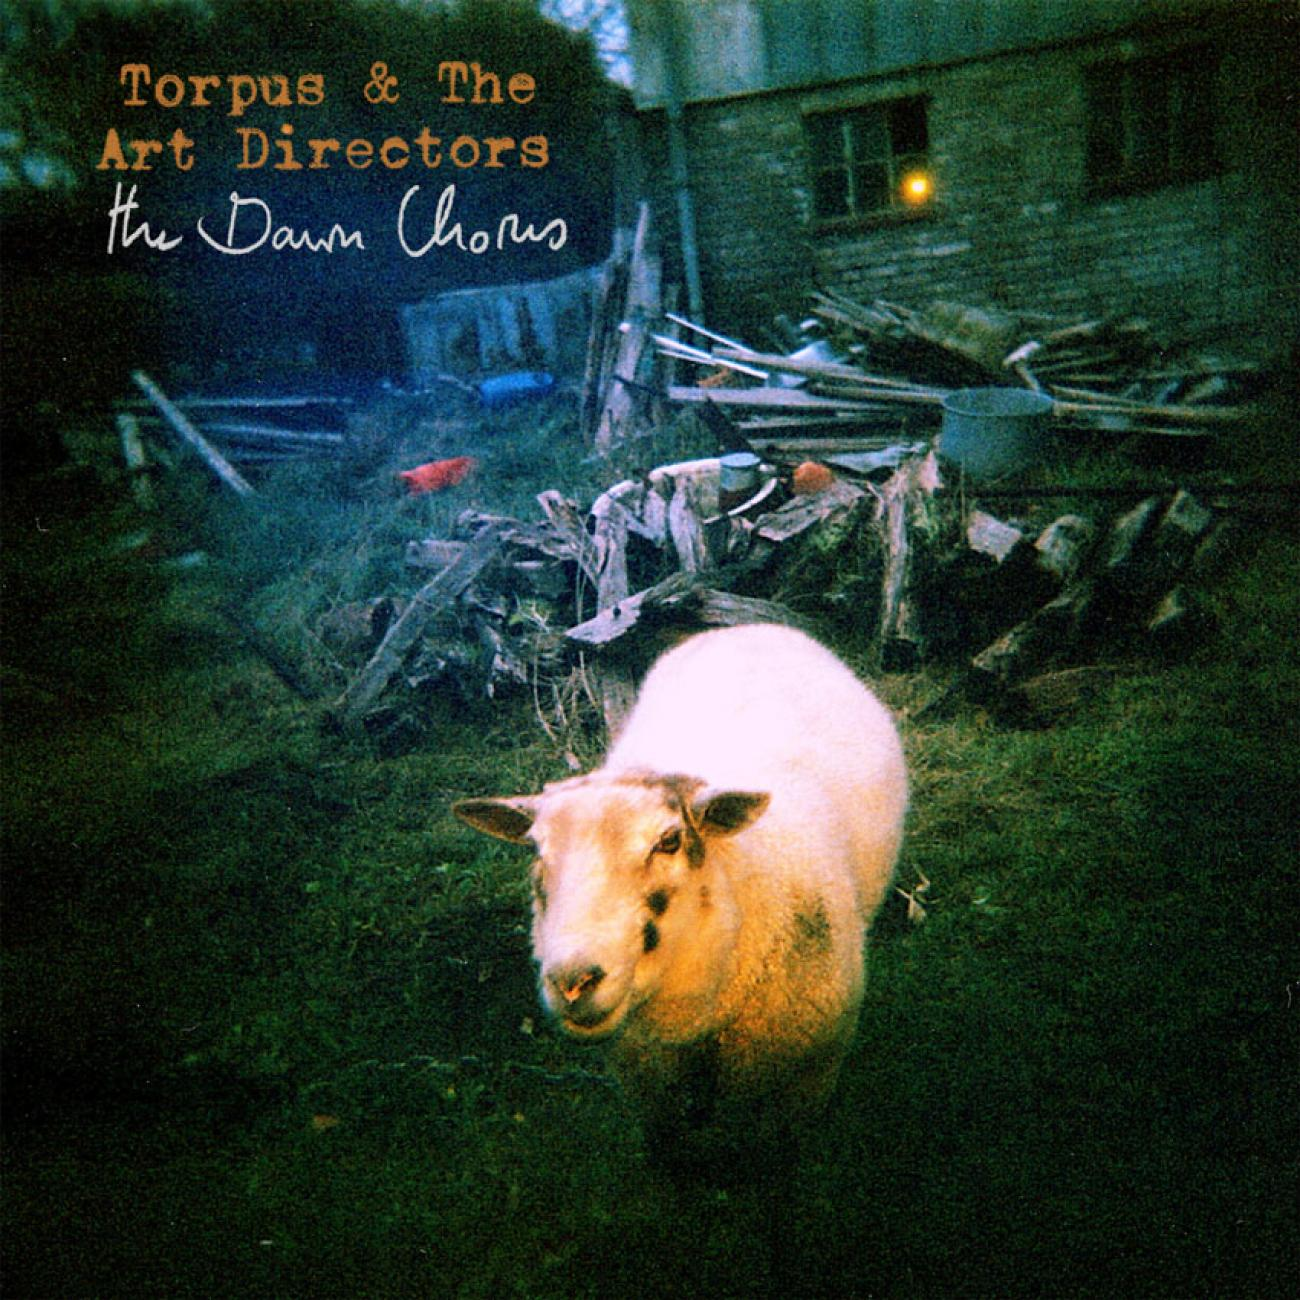 Torpus & The Art Directors - The Dawn Chorus